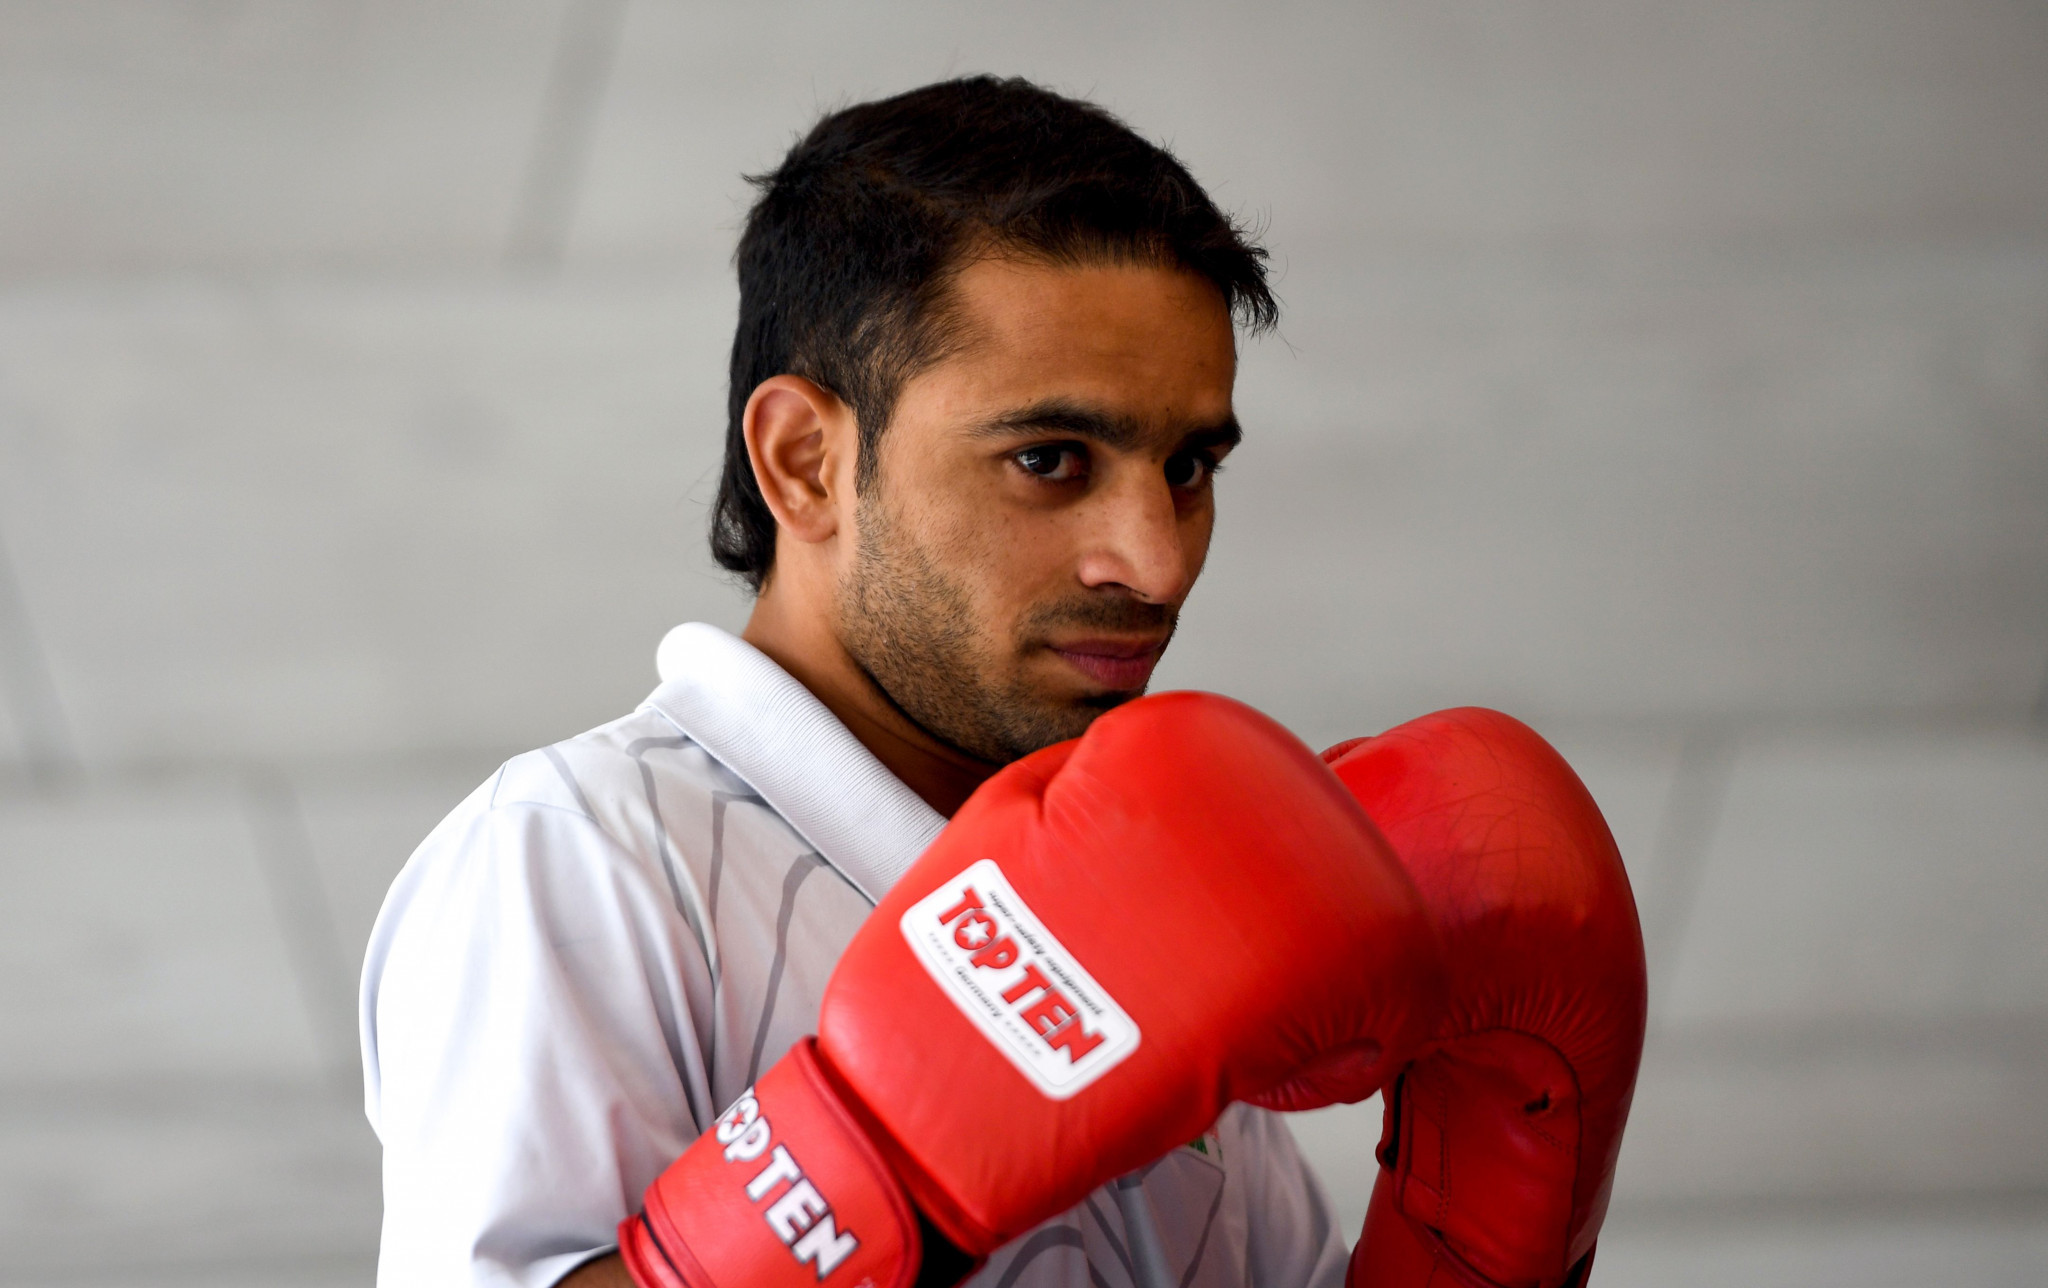 Boxing Federation of India nominates athletes for prestigious national awards